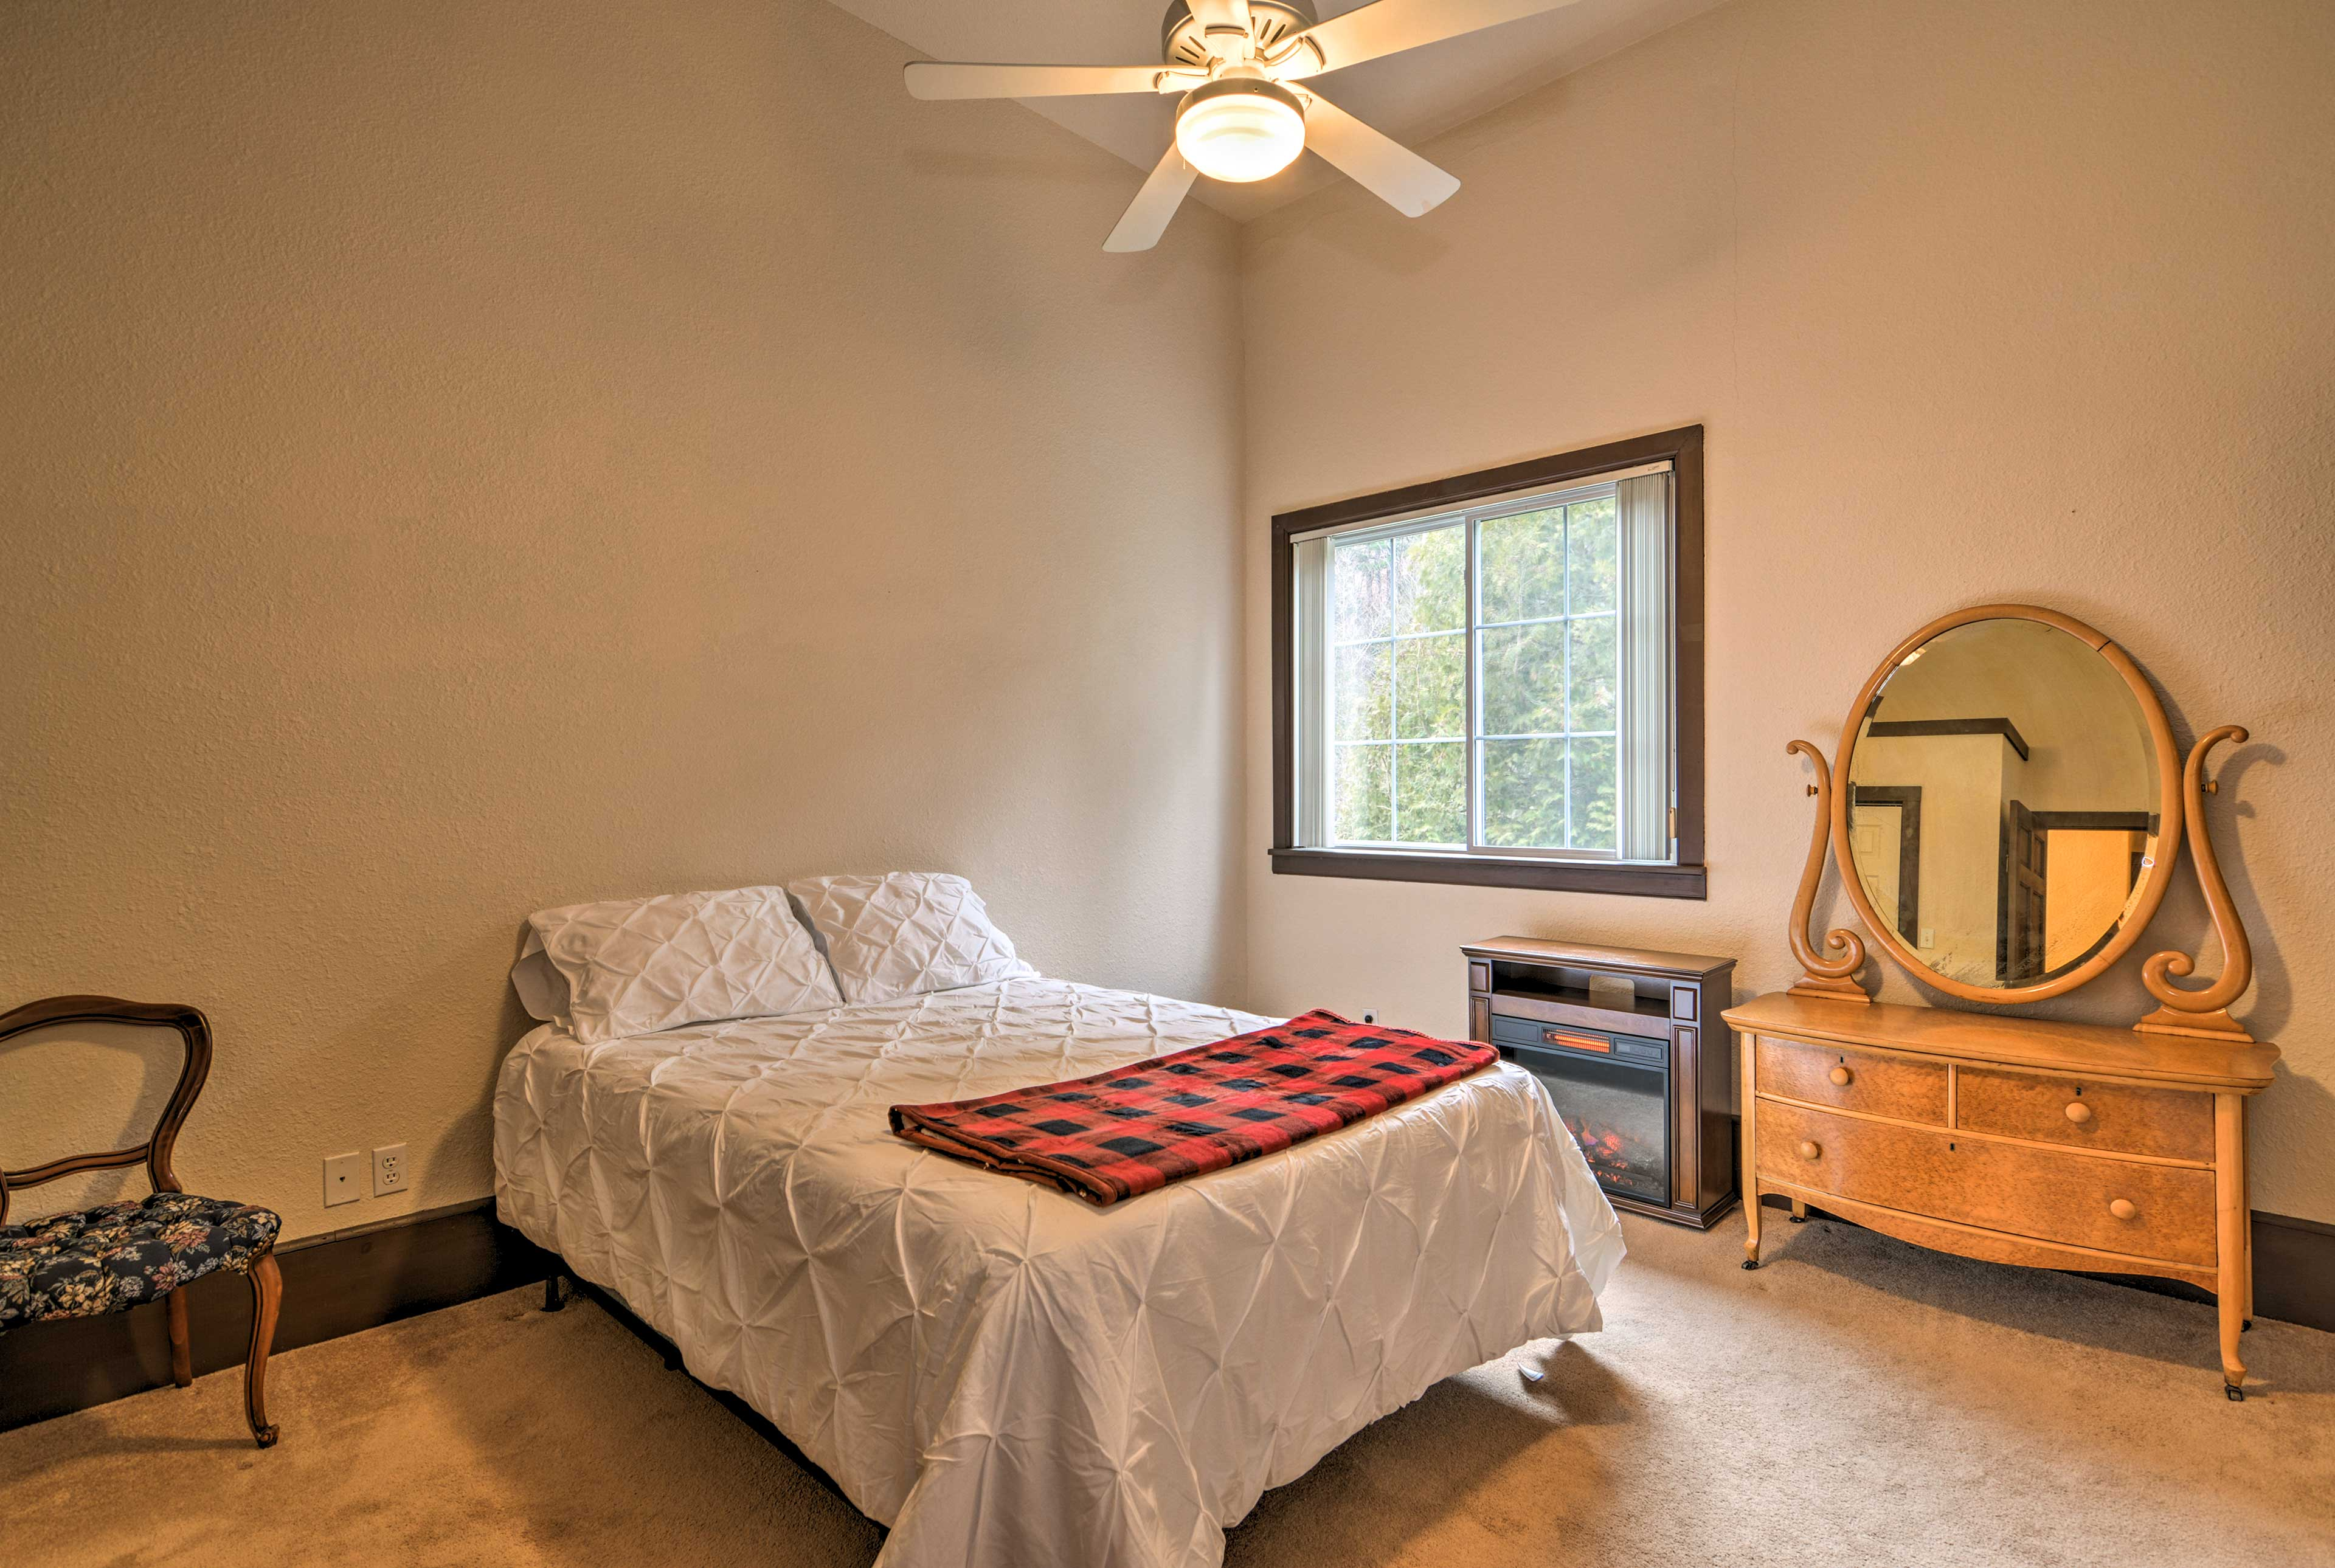 This room also hosts a queen bed for restful slumbers.